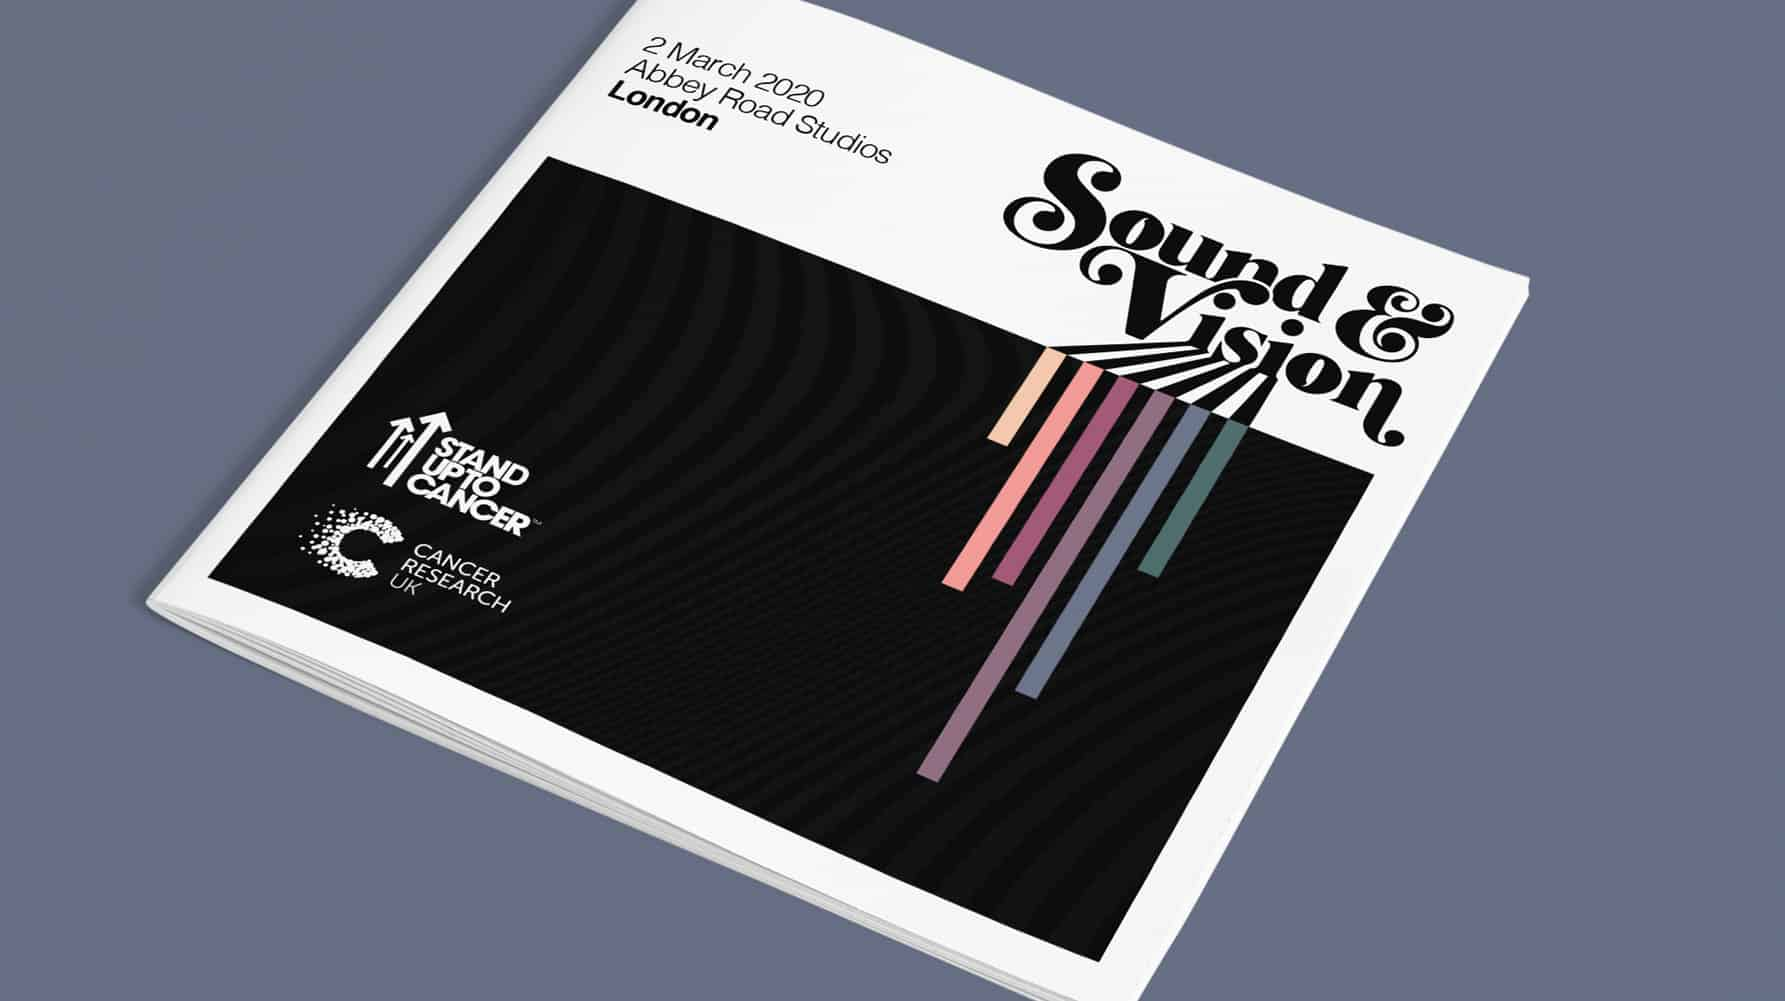 CRUK-Sound-and-Vision brochure